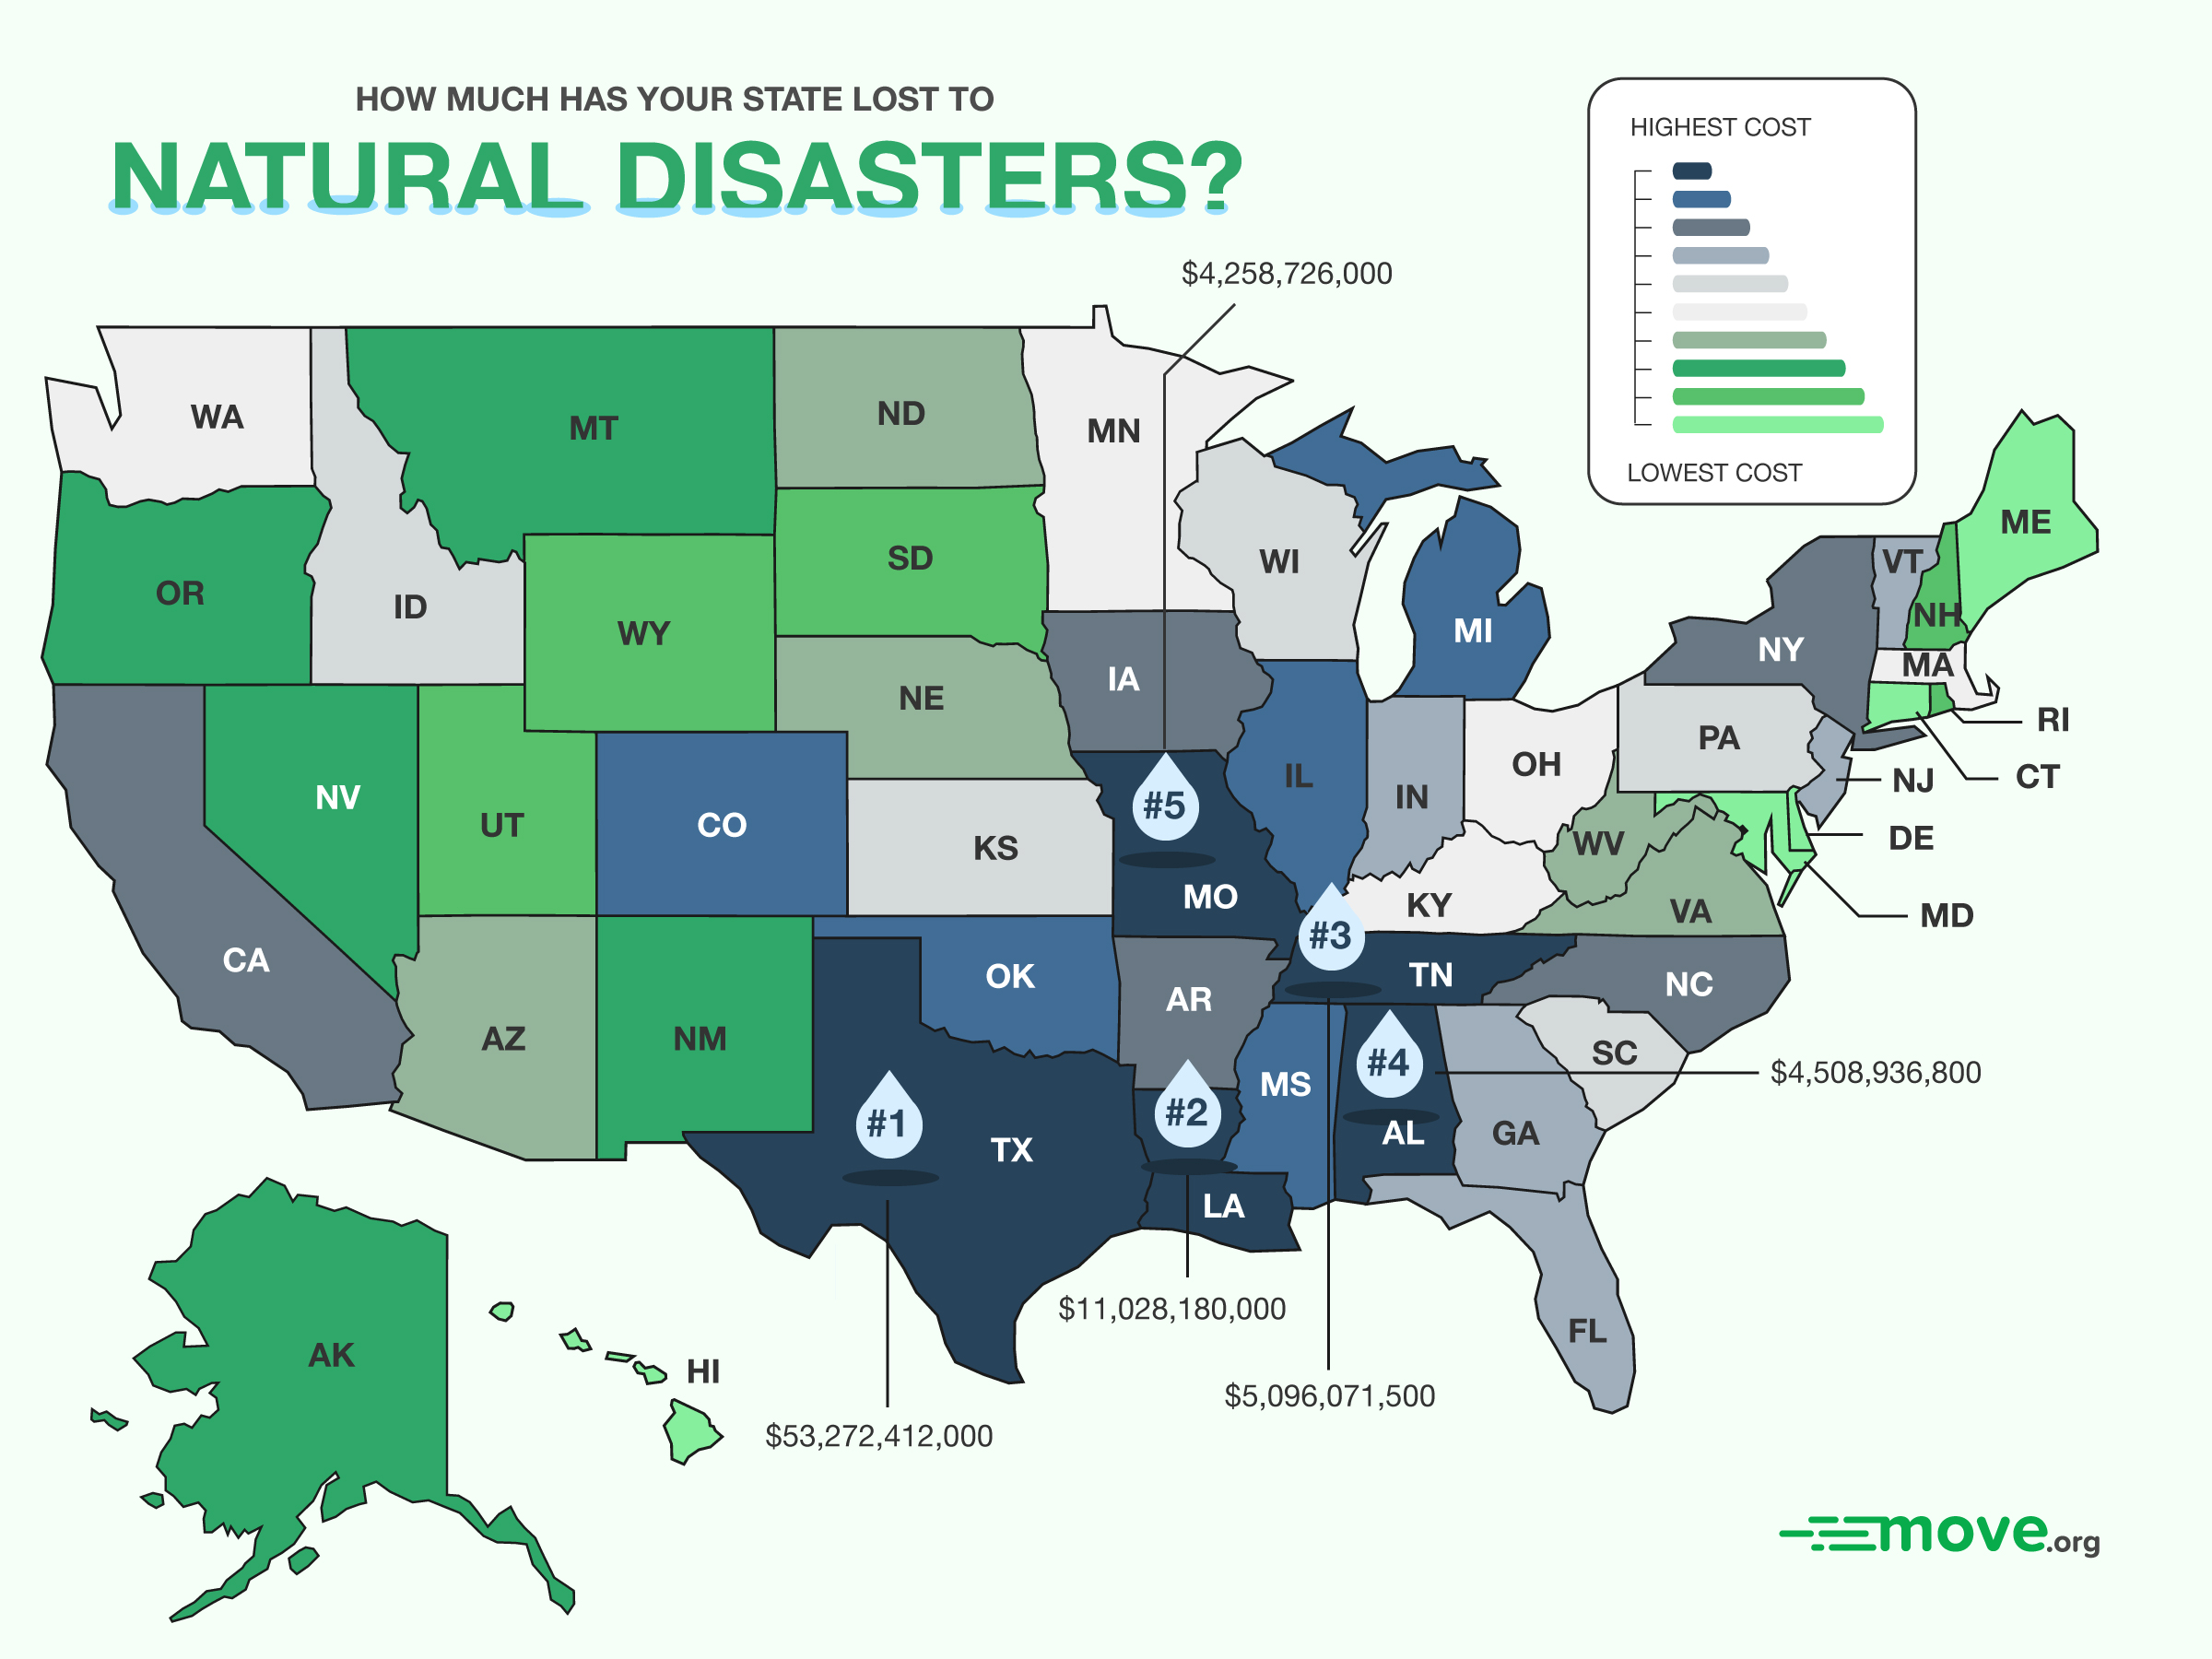 Loss to Natural Disasters